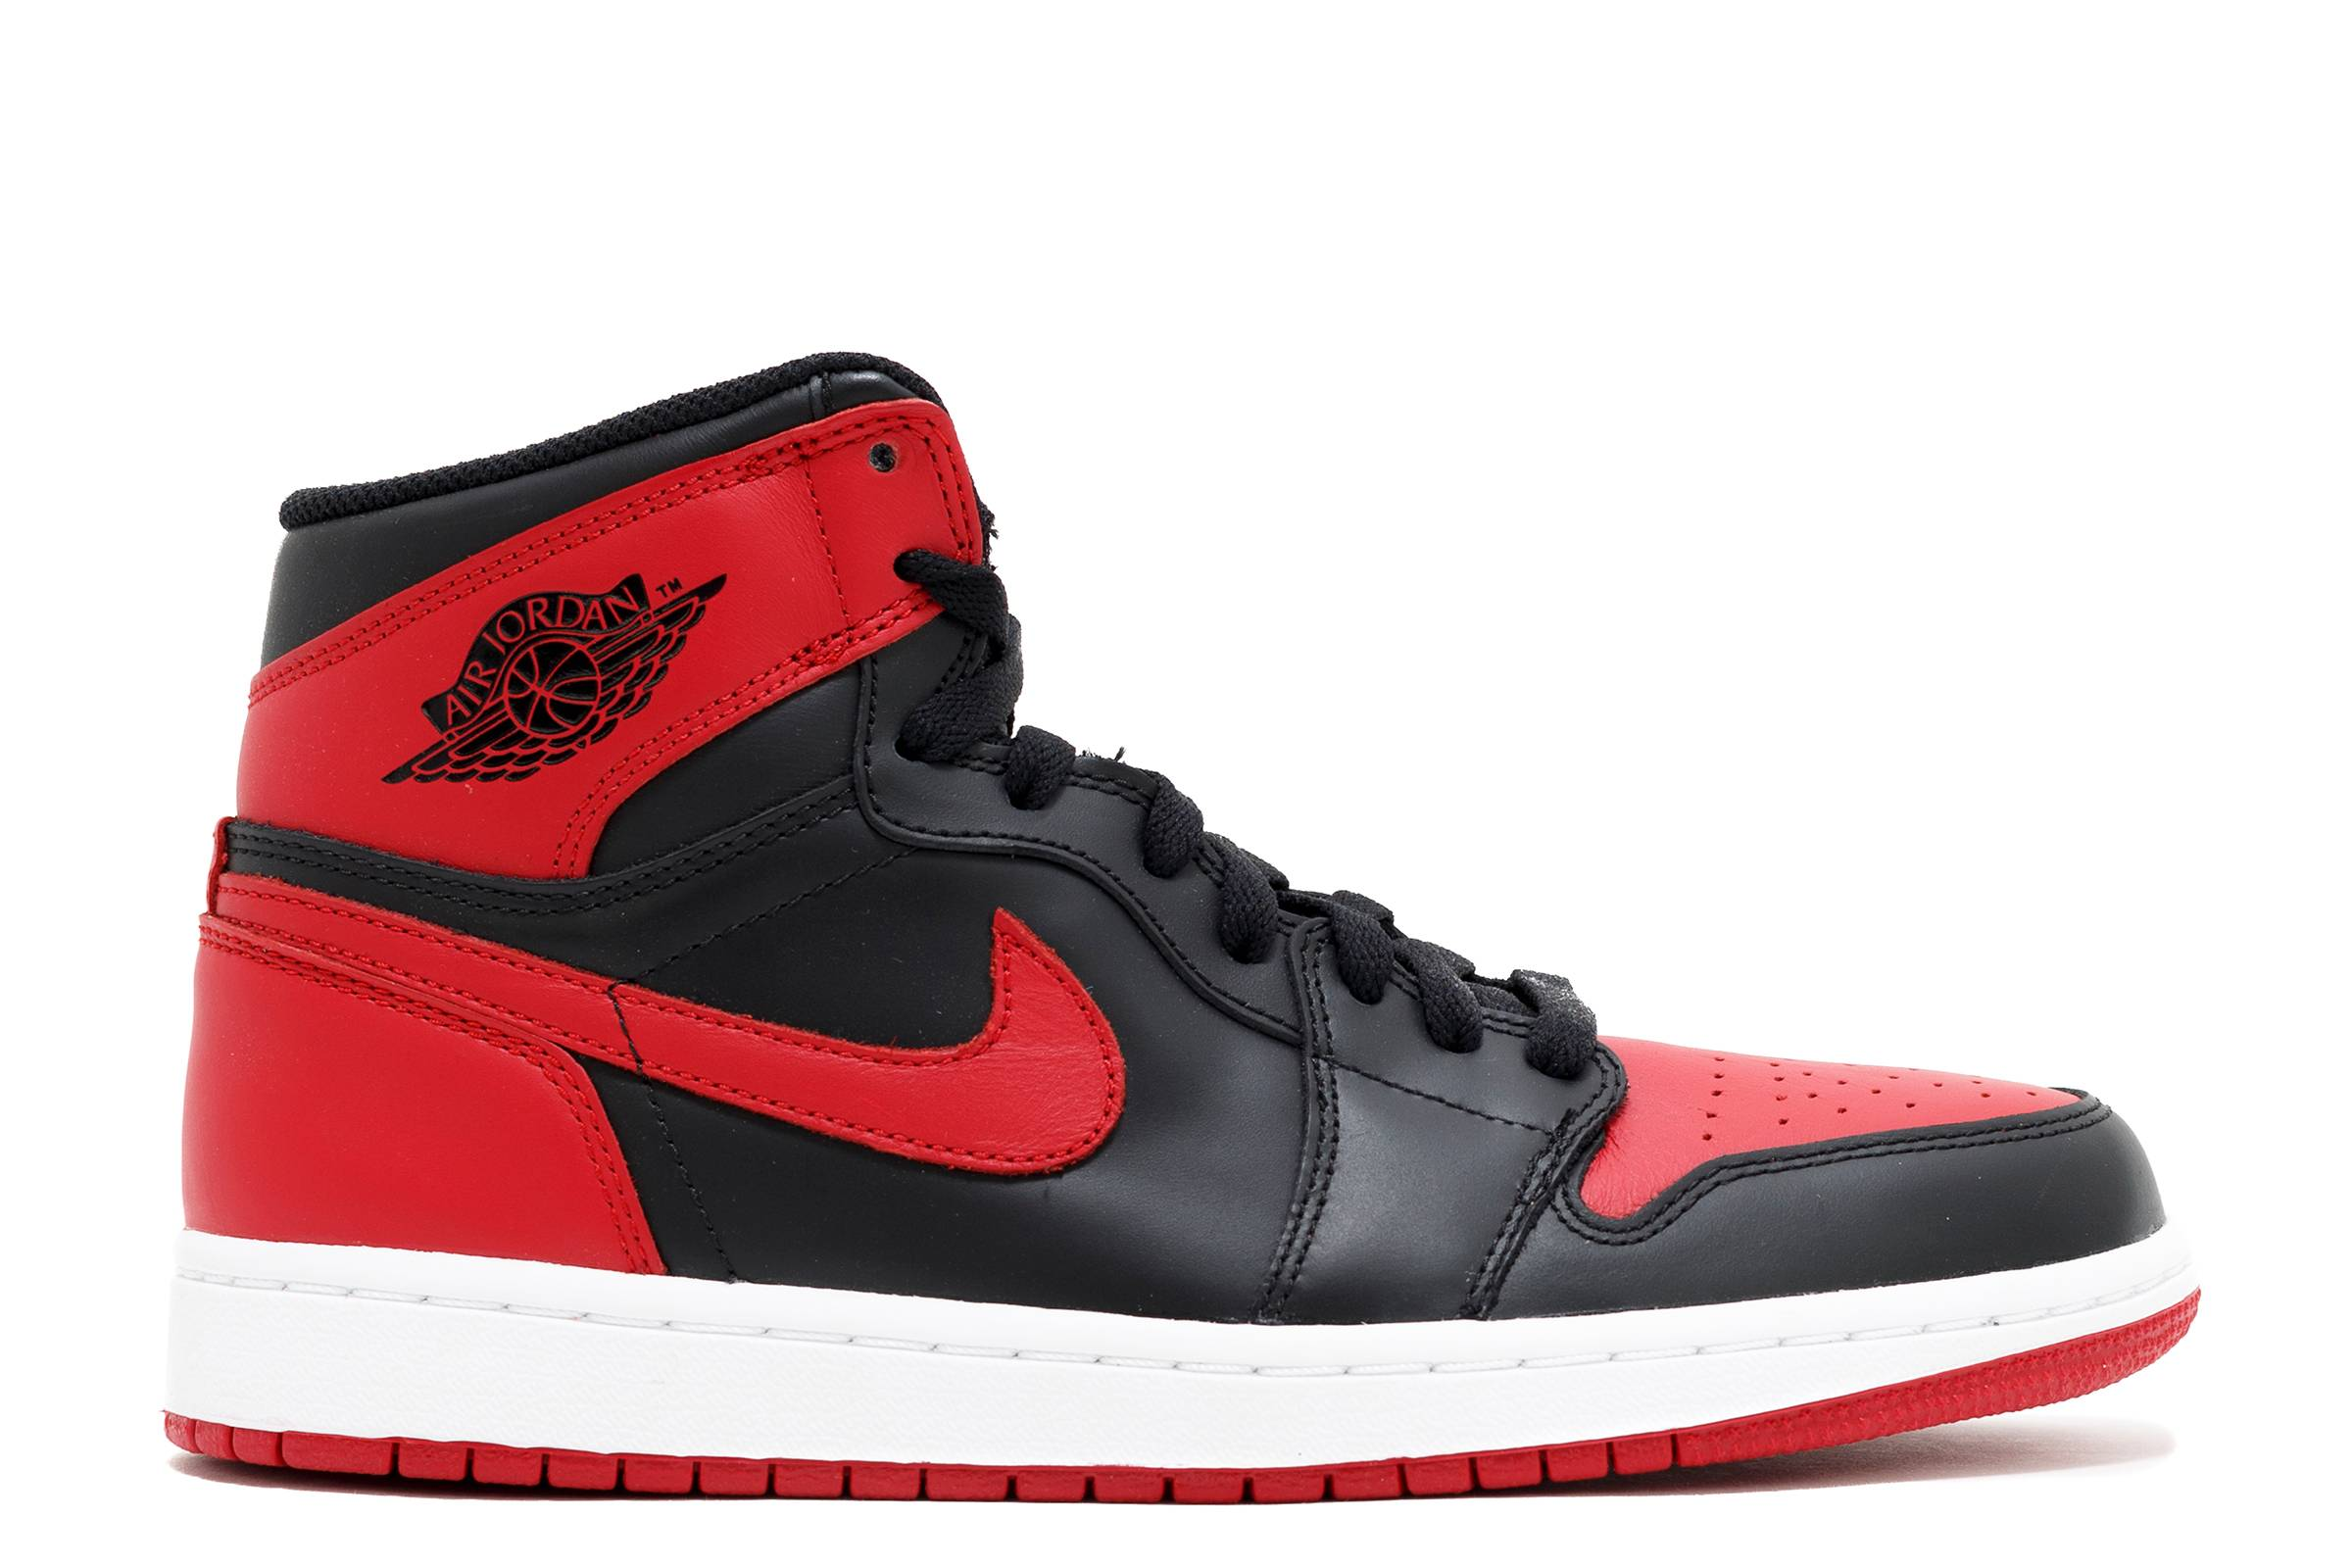 on sale 7c5b6 8c0e4 The One That Started It All  A History of the Jordan 1